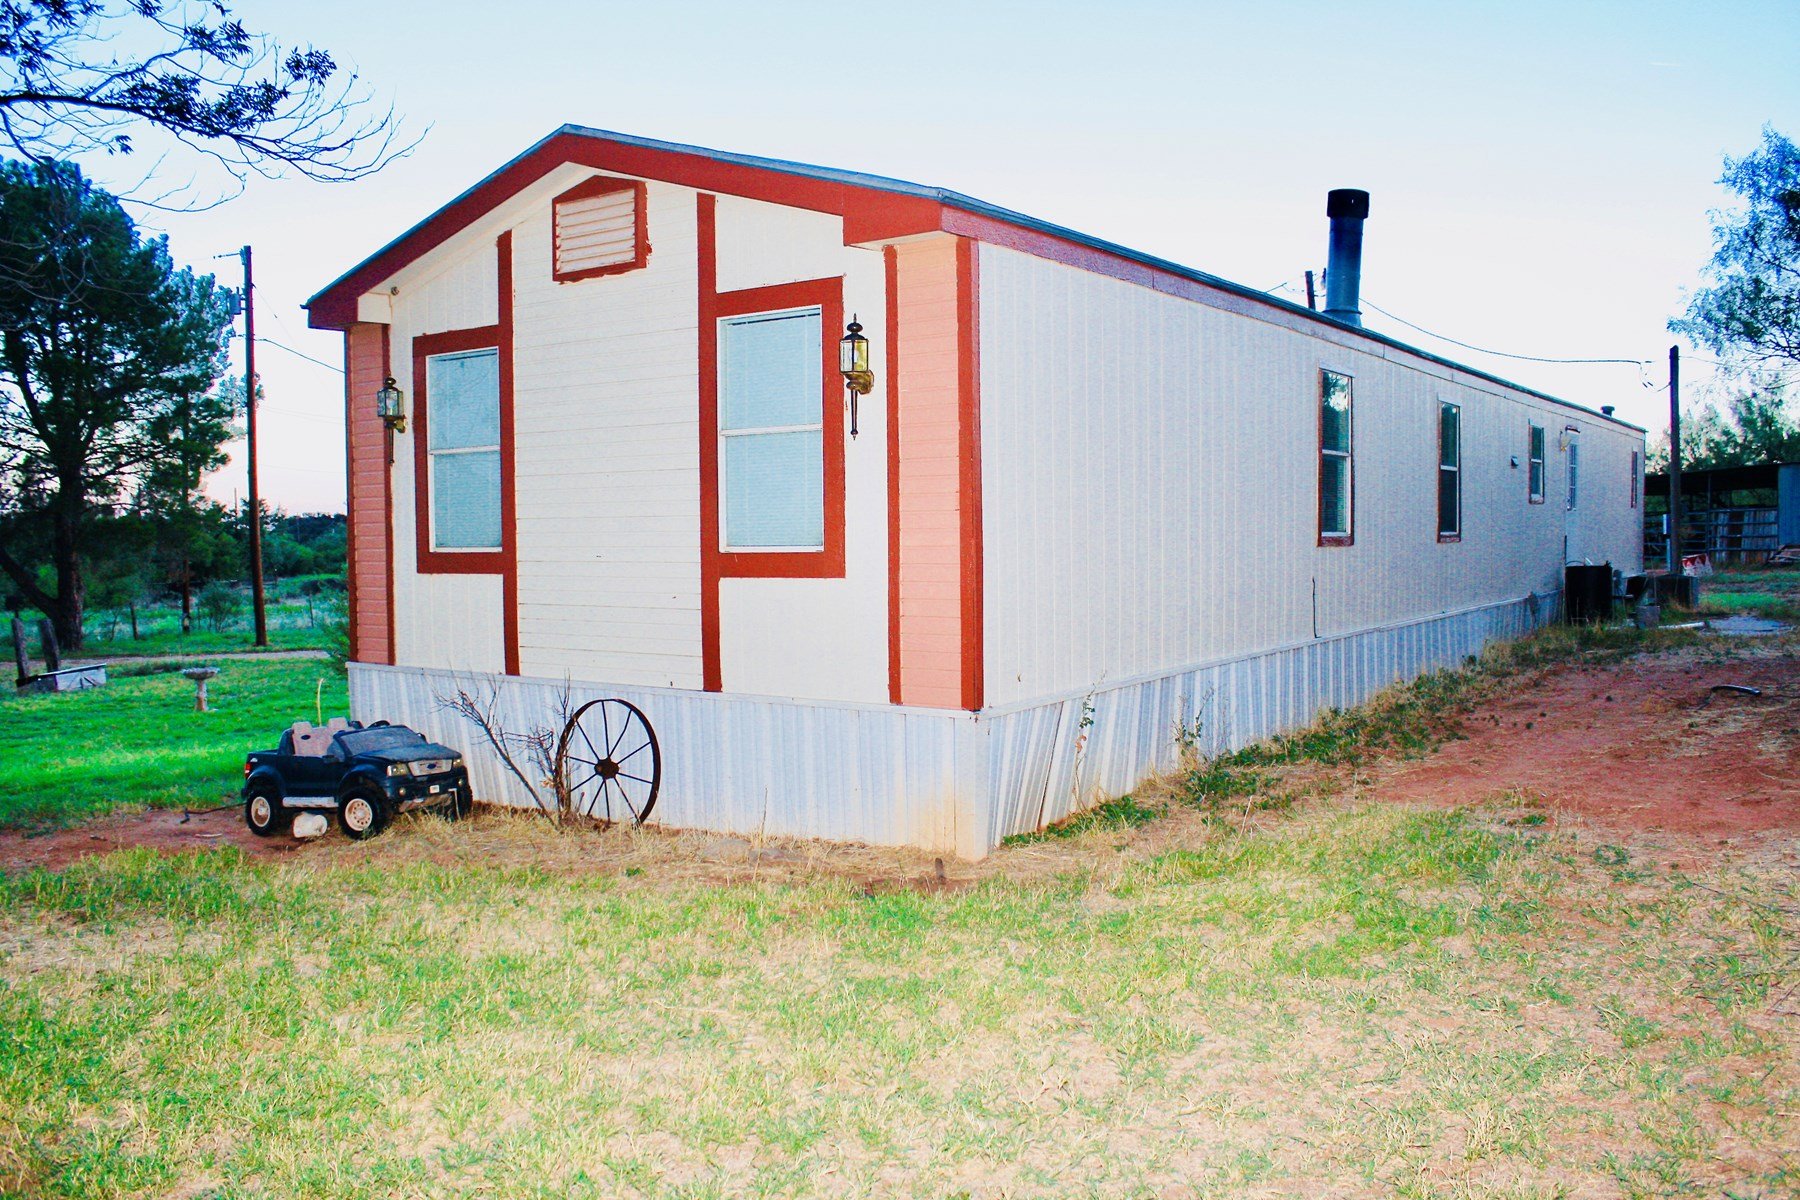 Land for sale featuring: 3bd 2bth mobile home & roping arena